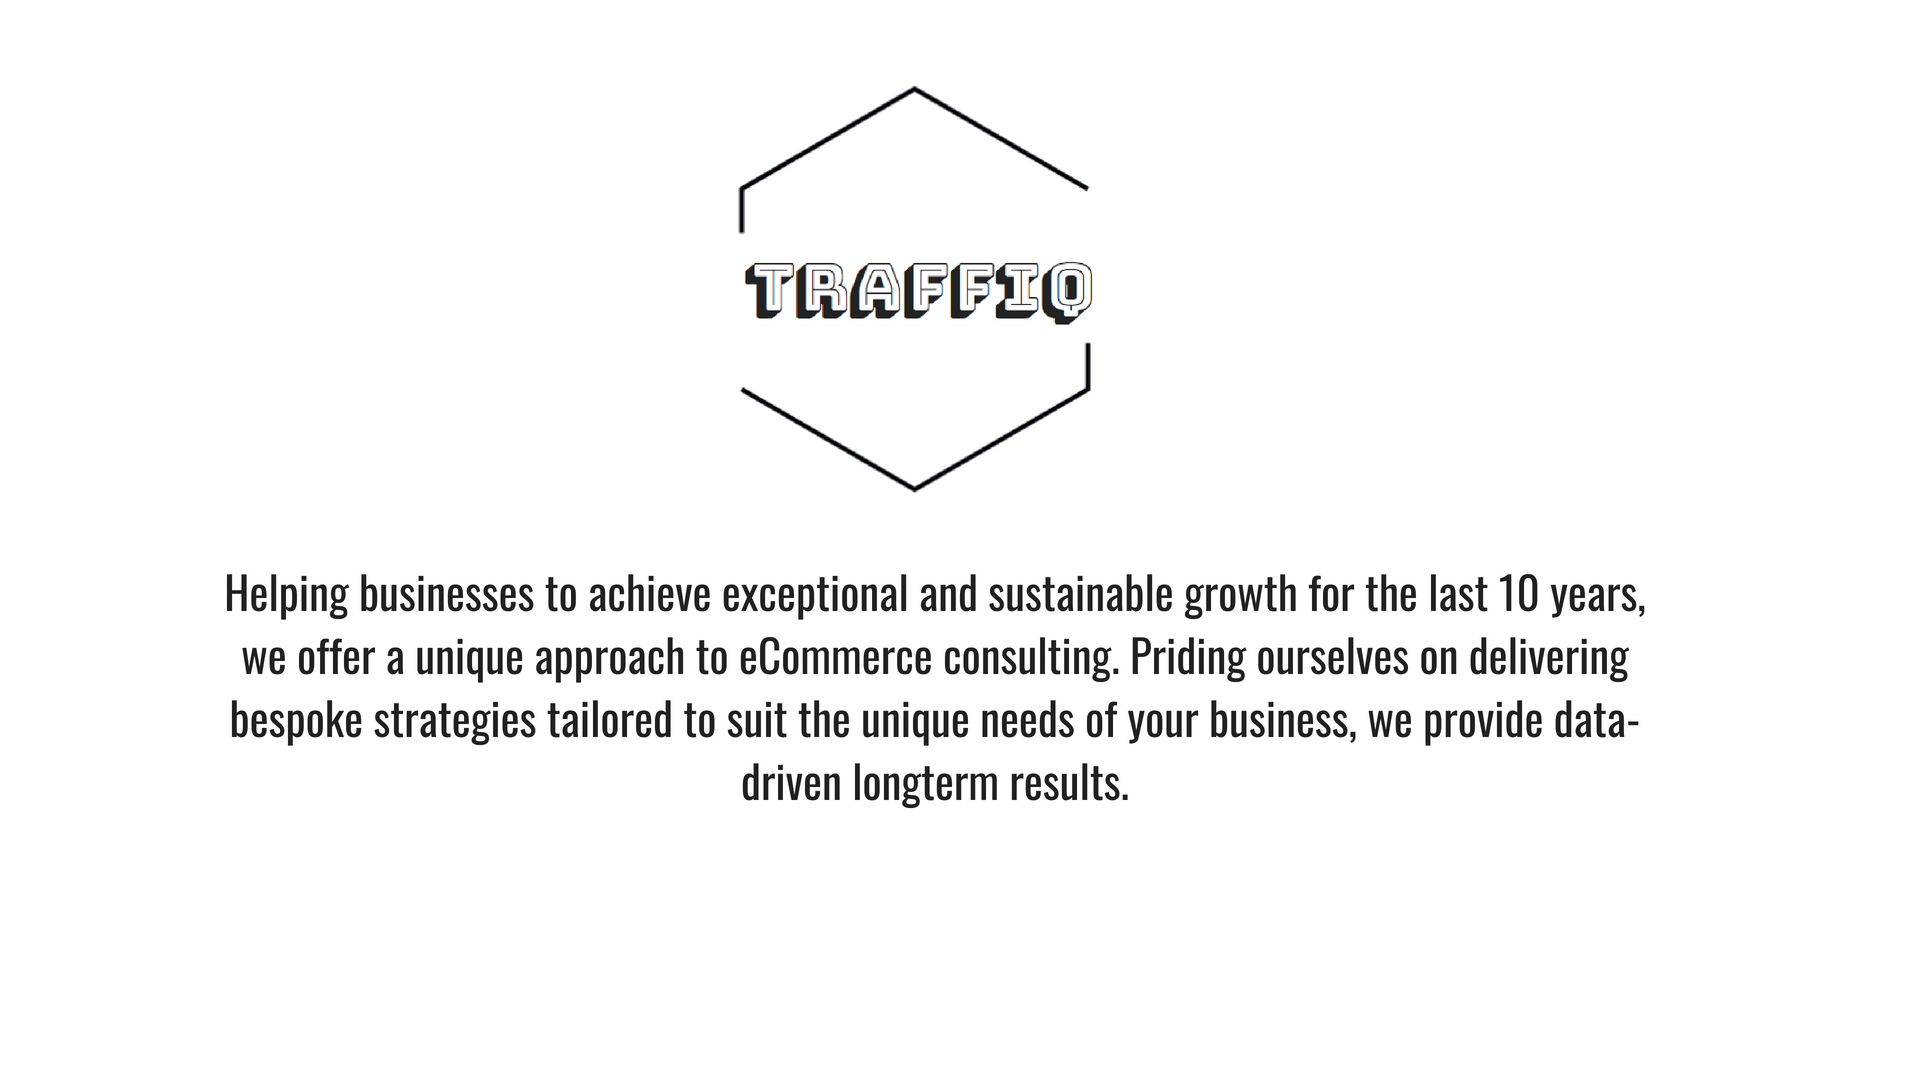 | Brand Building | Digital Strategy | eCommerce Expertise |-3